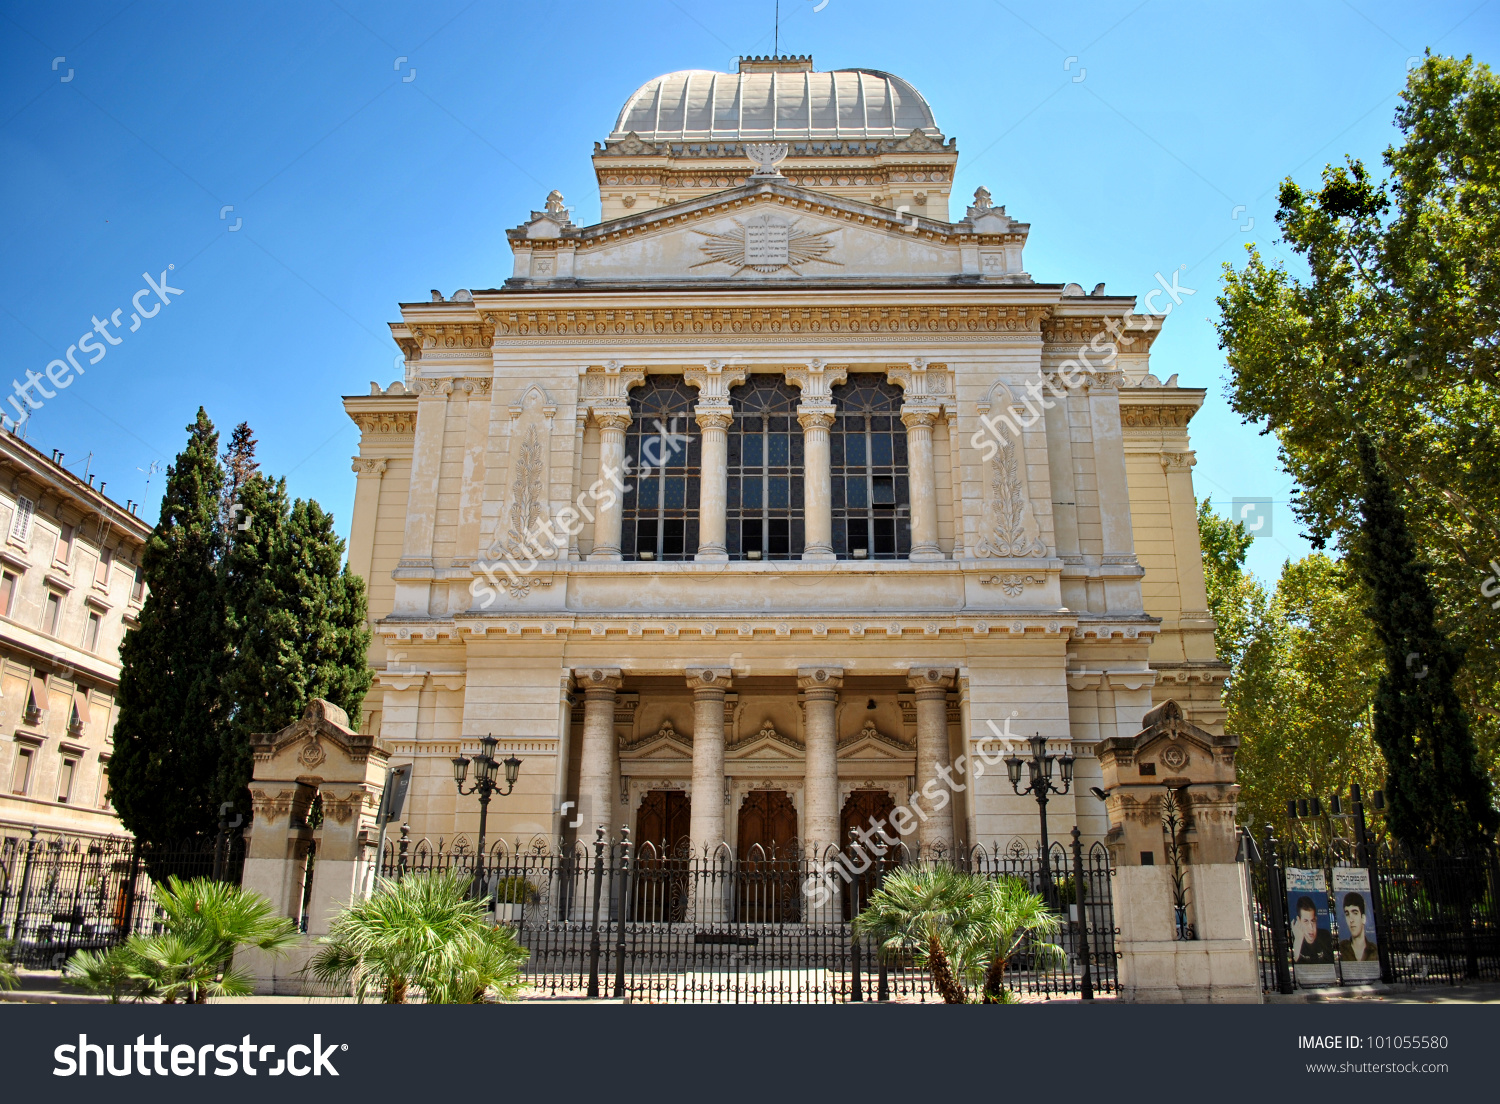 Great Synagogue Rome Stock Photo 101055580.